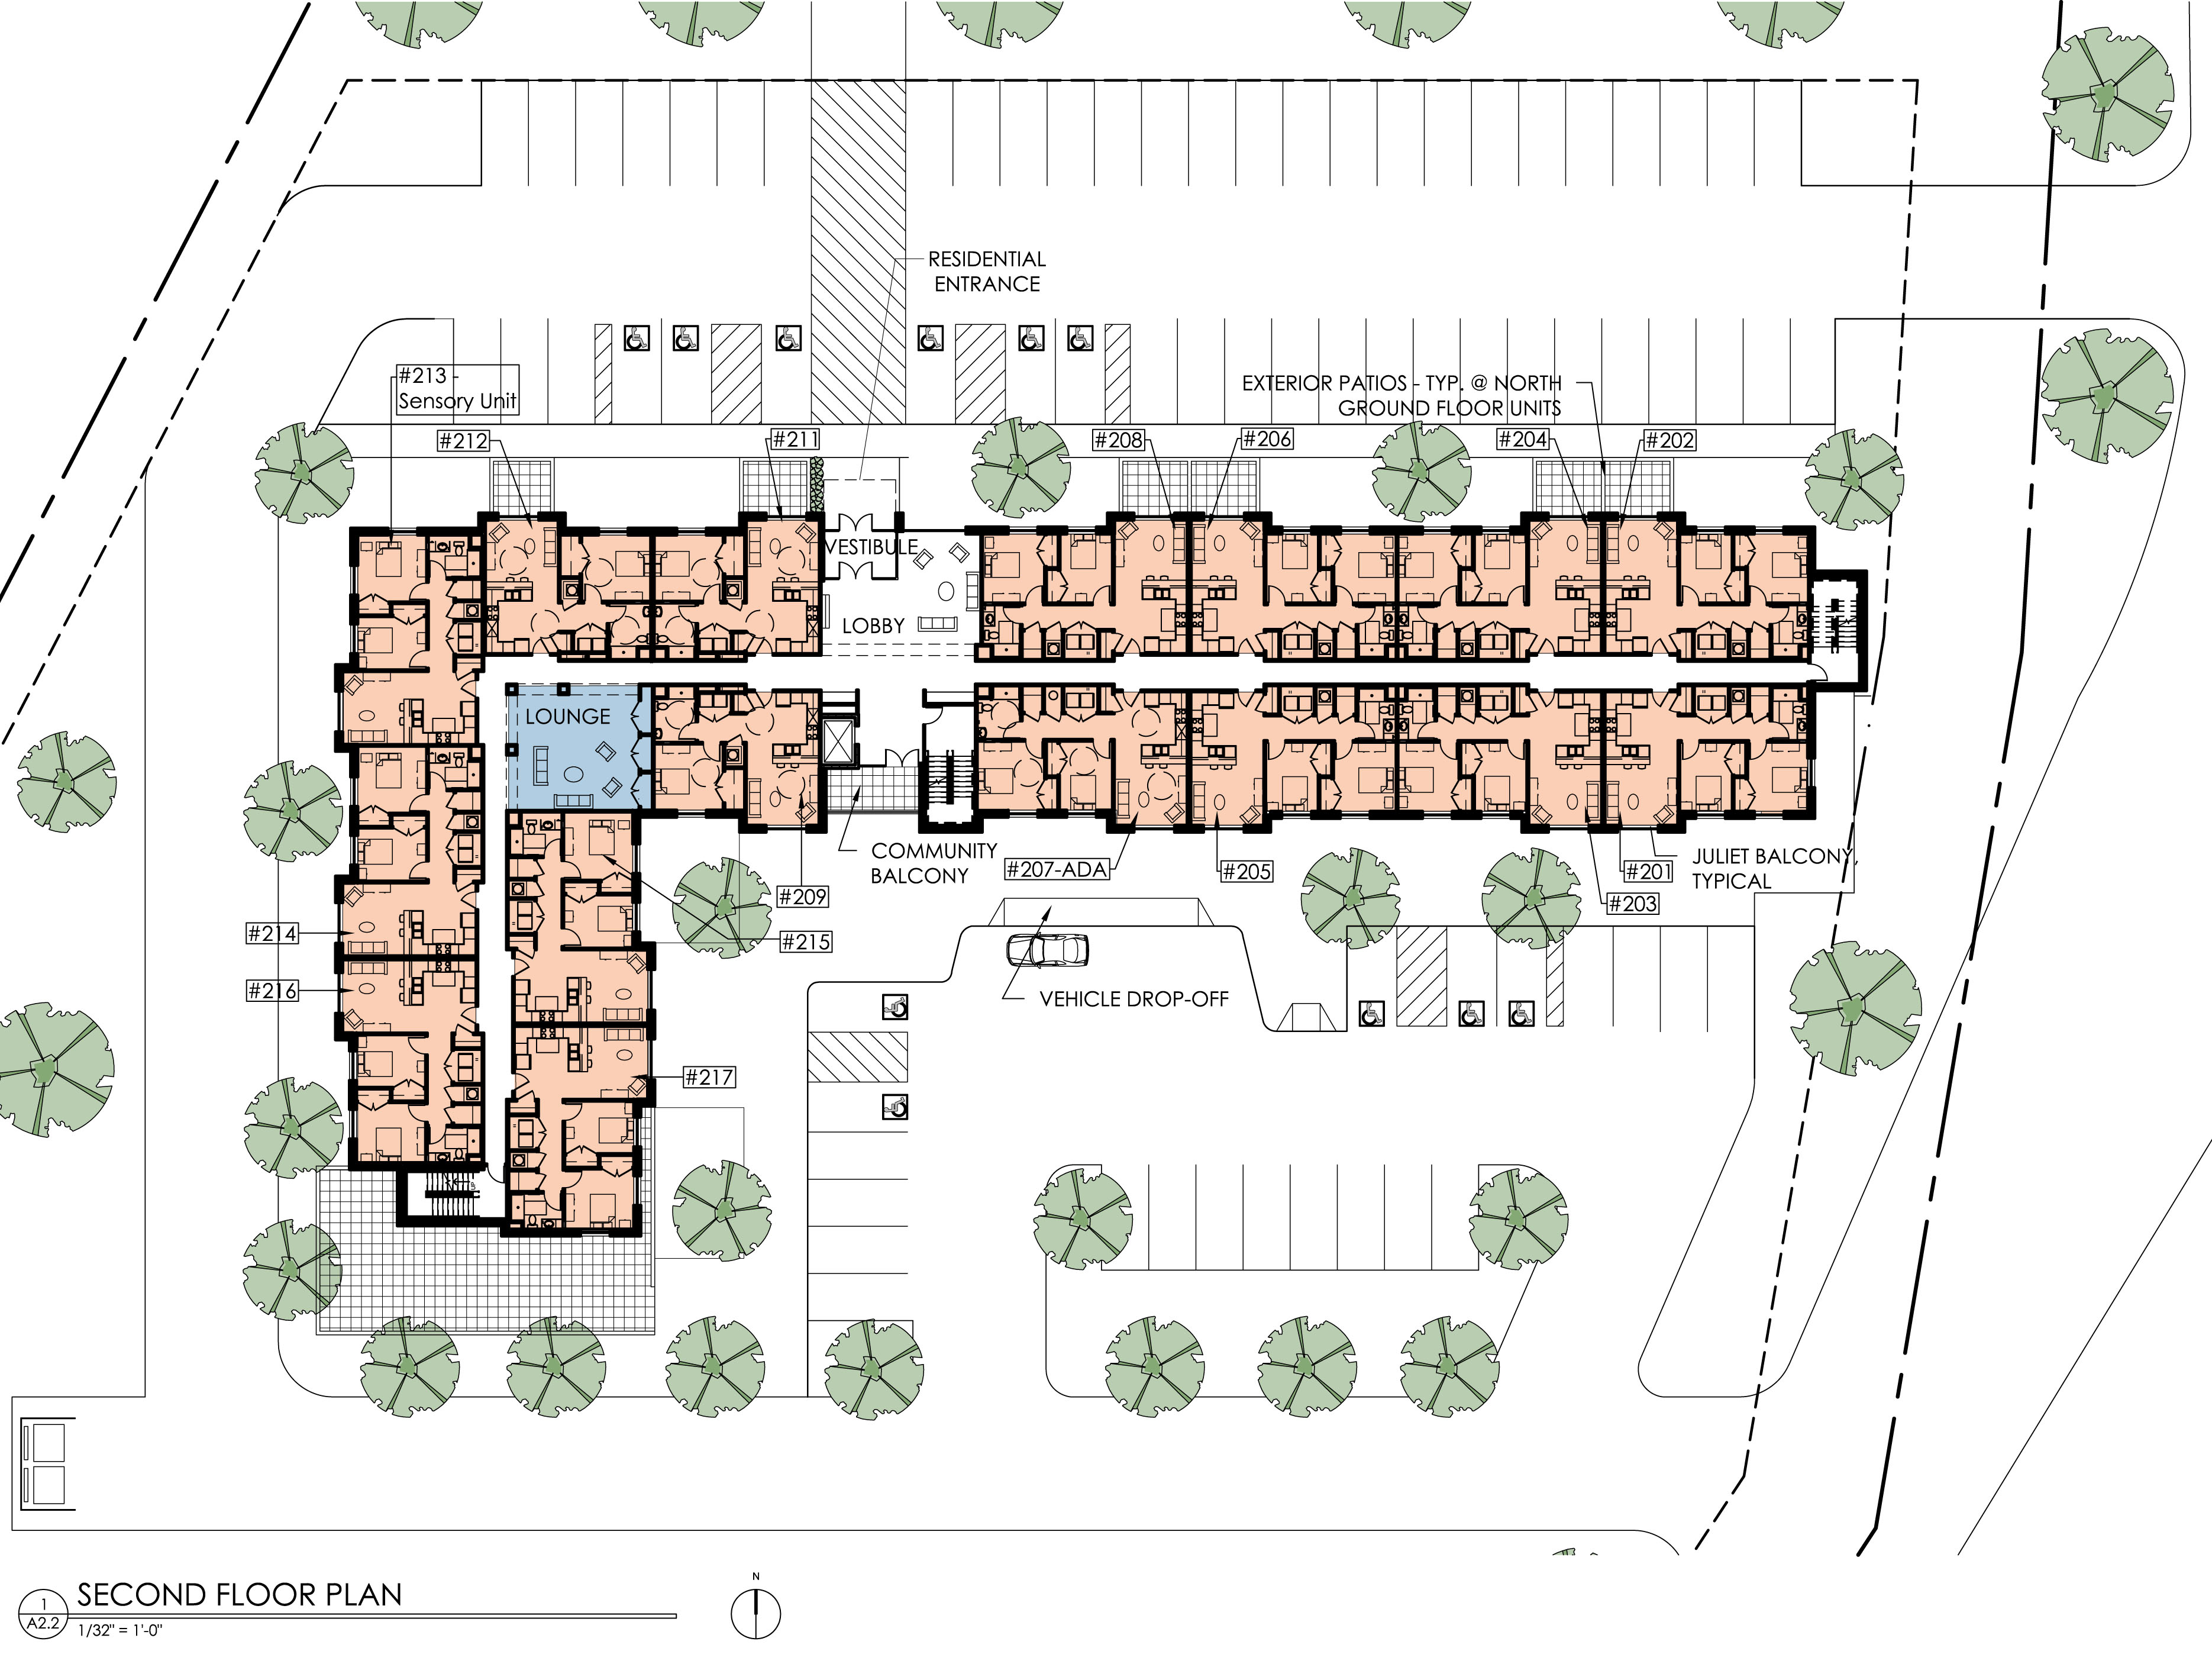 Roselawn Senior Floorplan